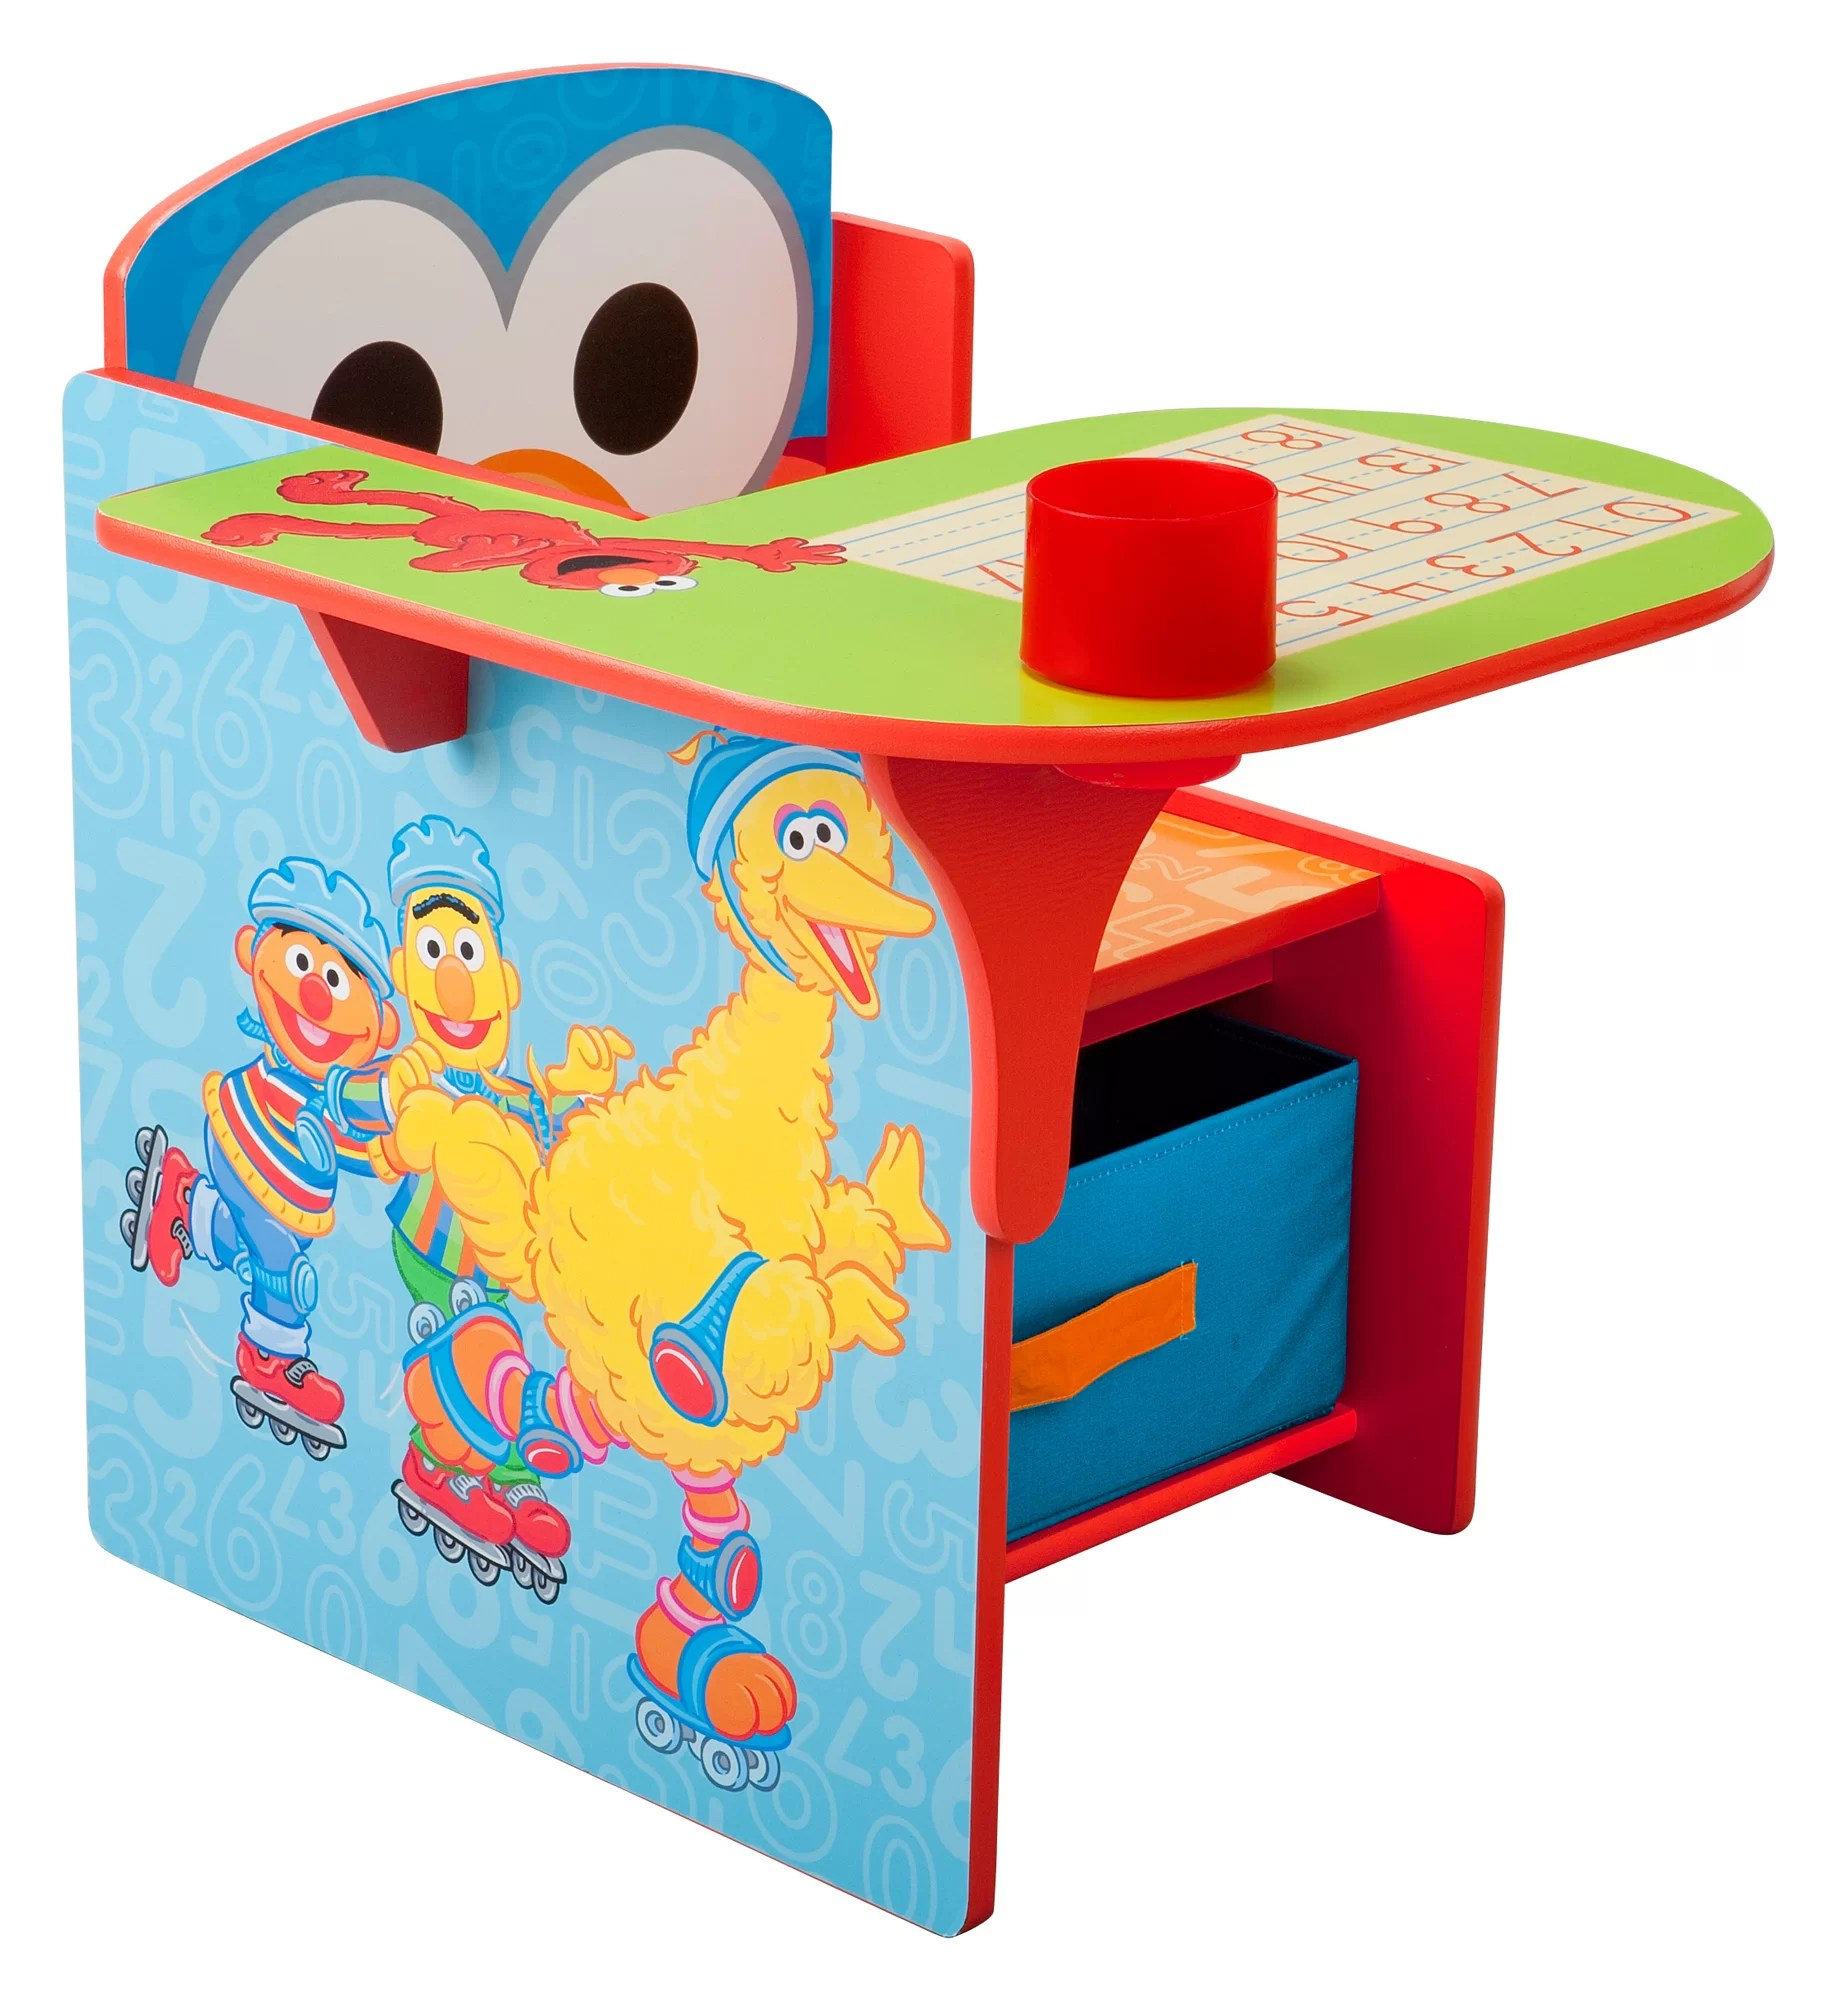 Kids Chair Desk Sesame Street Kids Desk Chair With Storage Compartment And Cup Holder